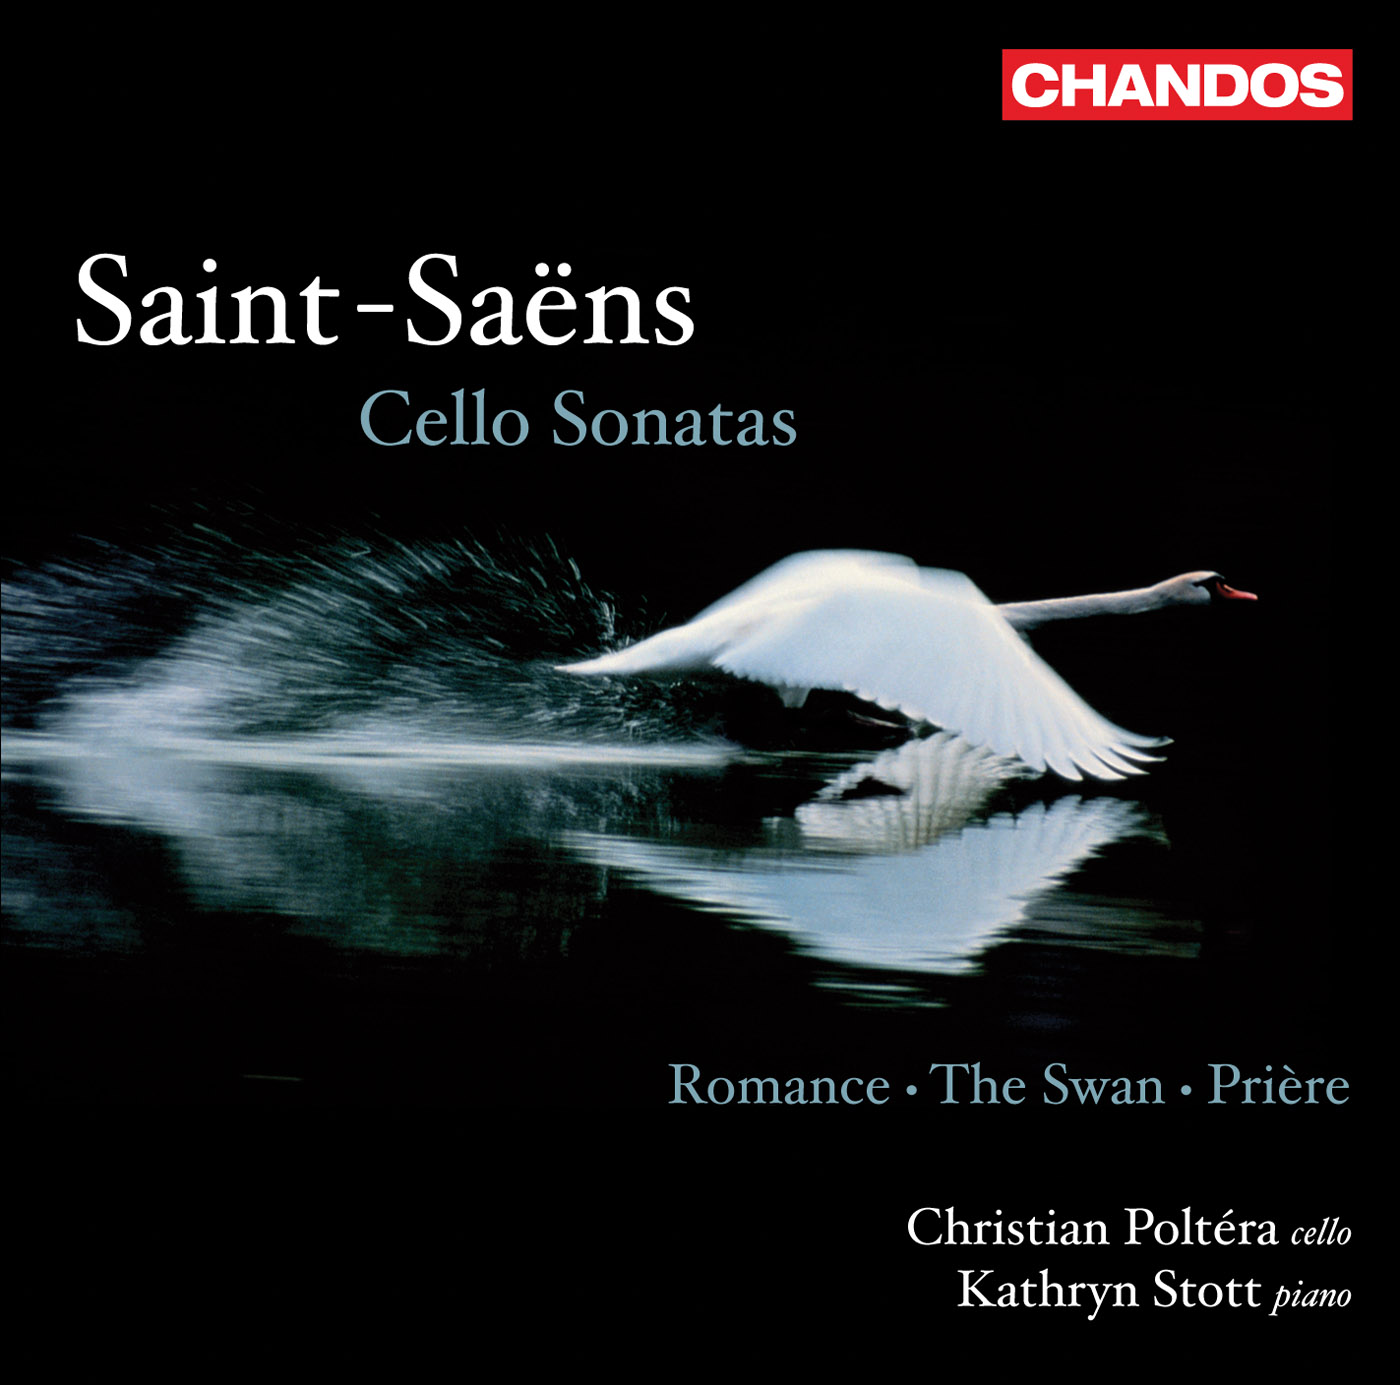 eClassical - Saint-Saëns, C : Cello Sonatas / Priere / The